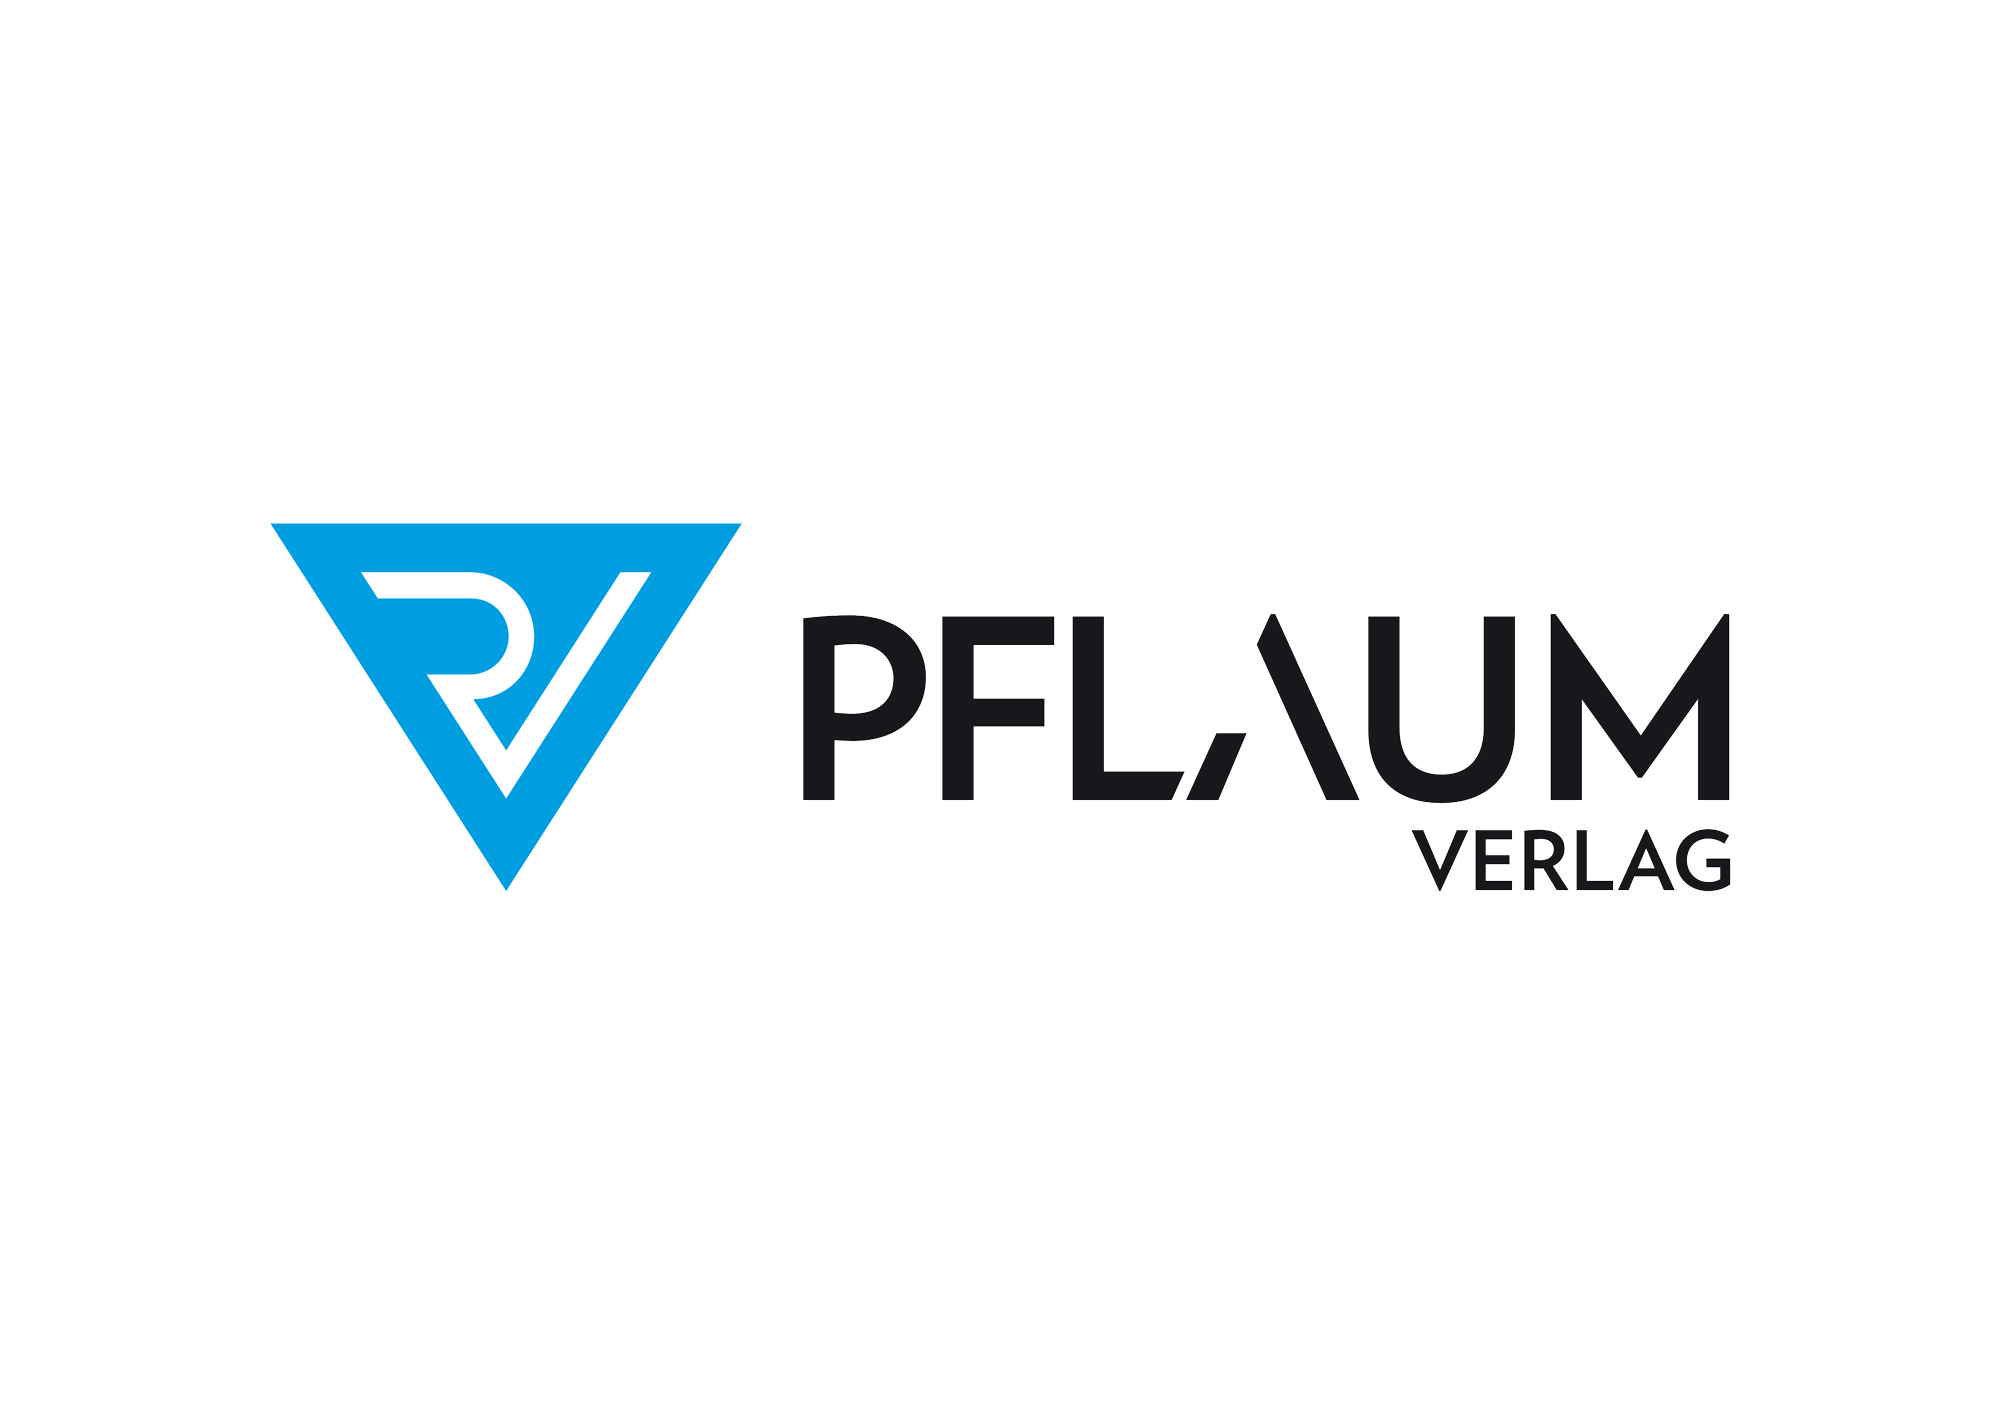 Pflaum-Verlag_Logo-Hor-Full_Color.jpg?fit=2000%2C1414